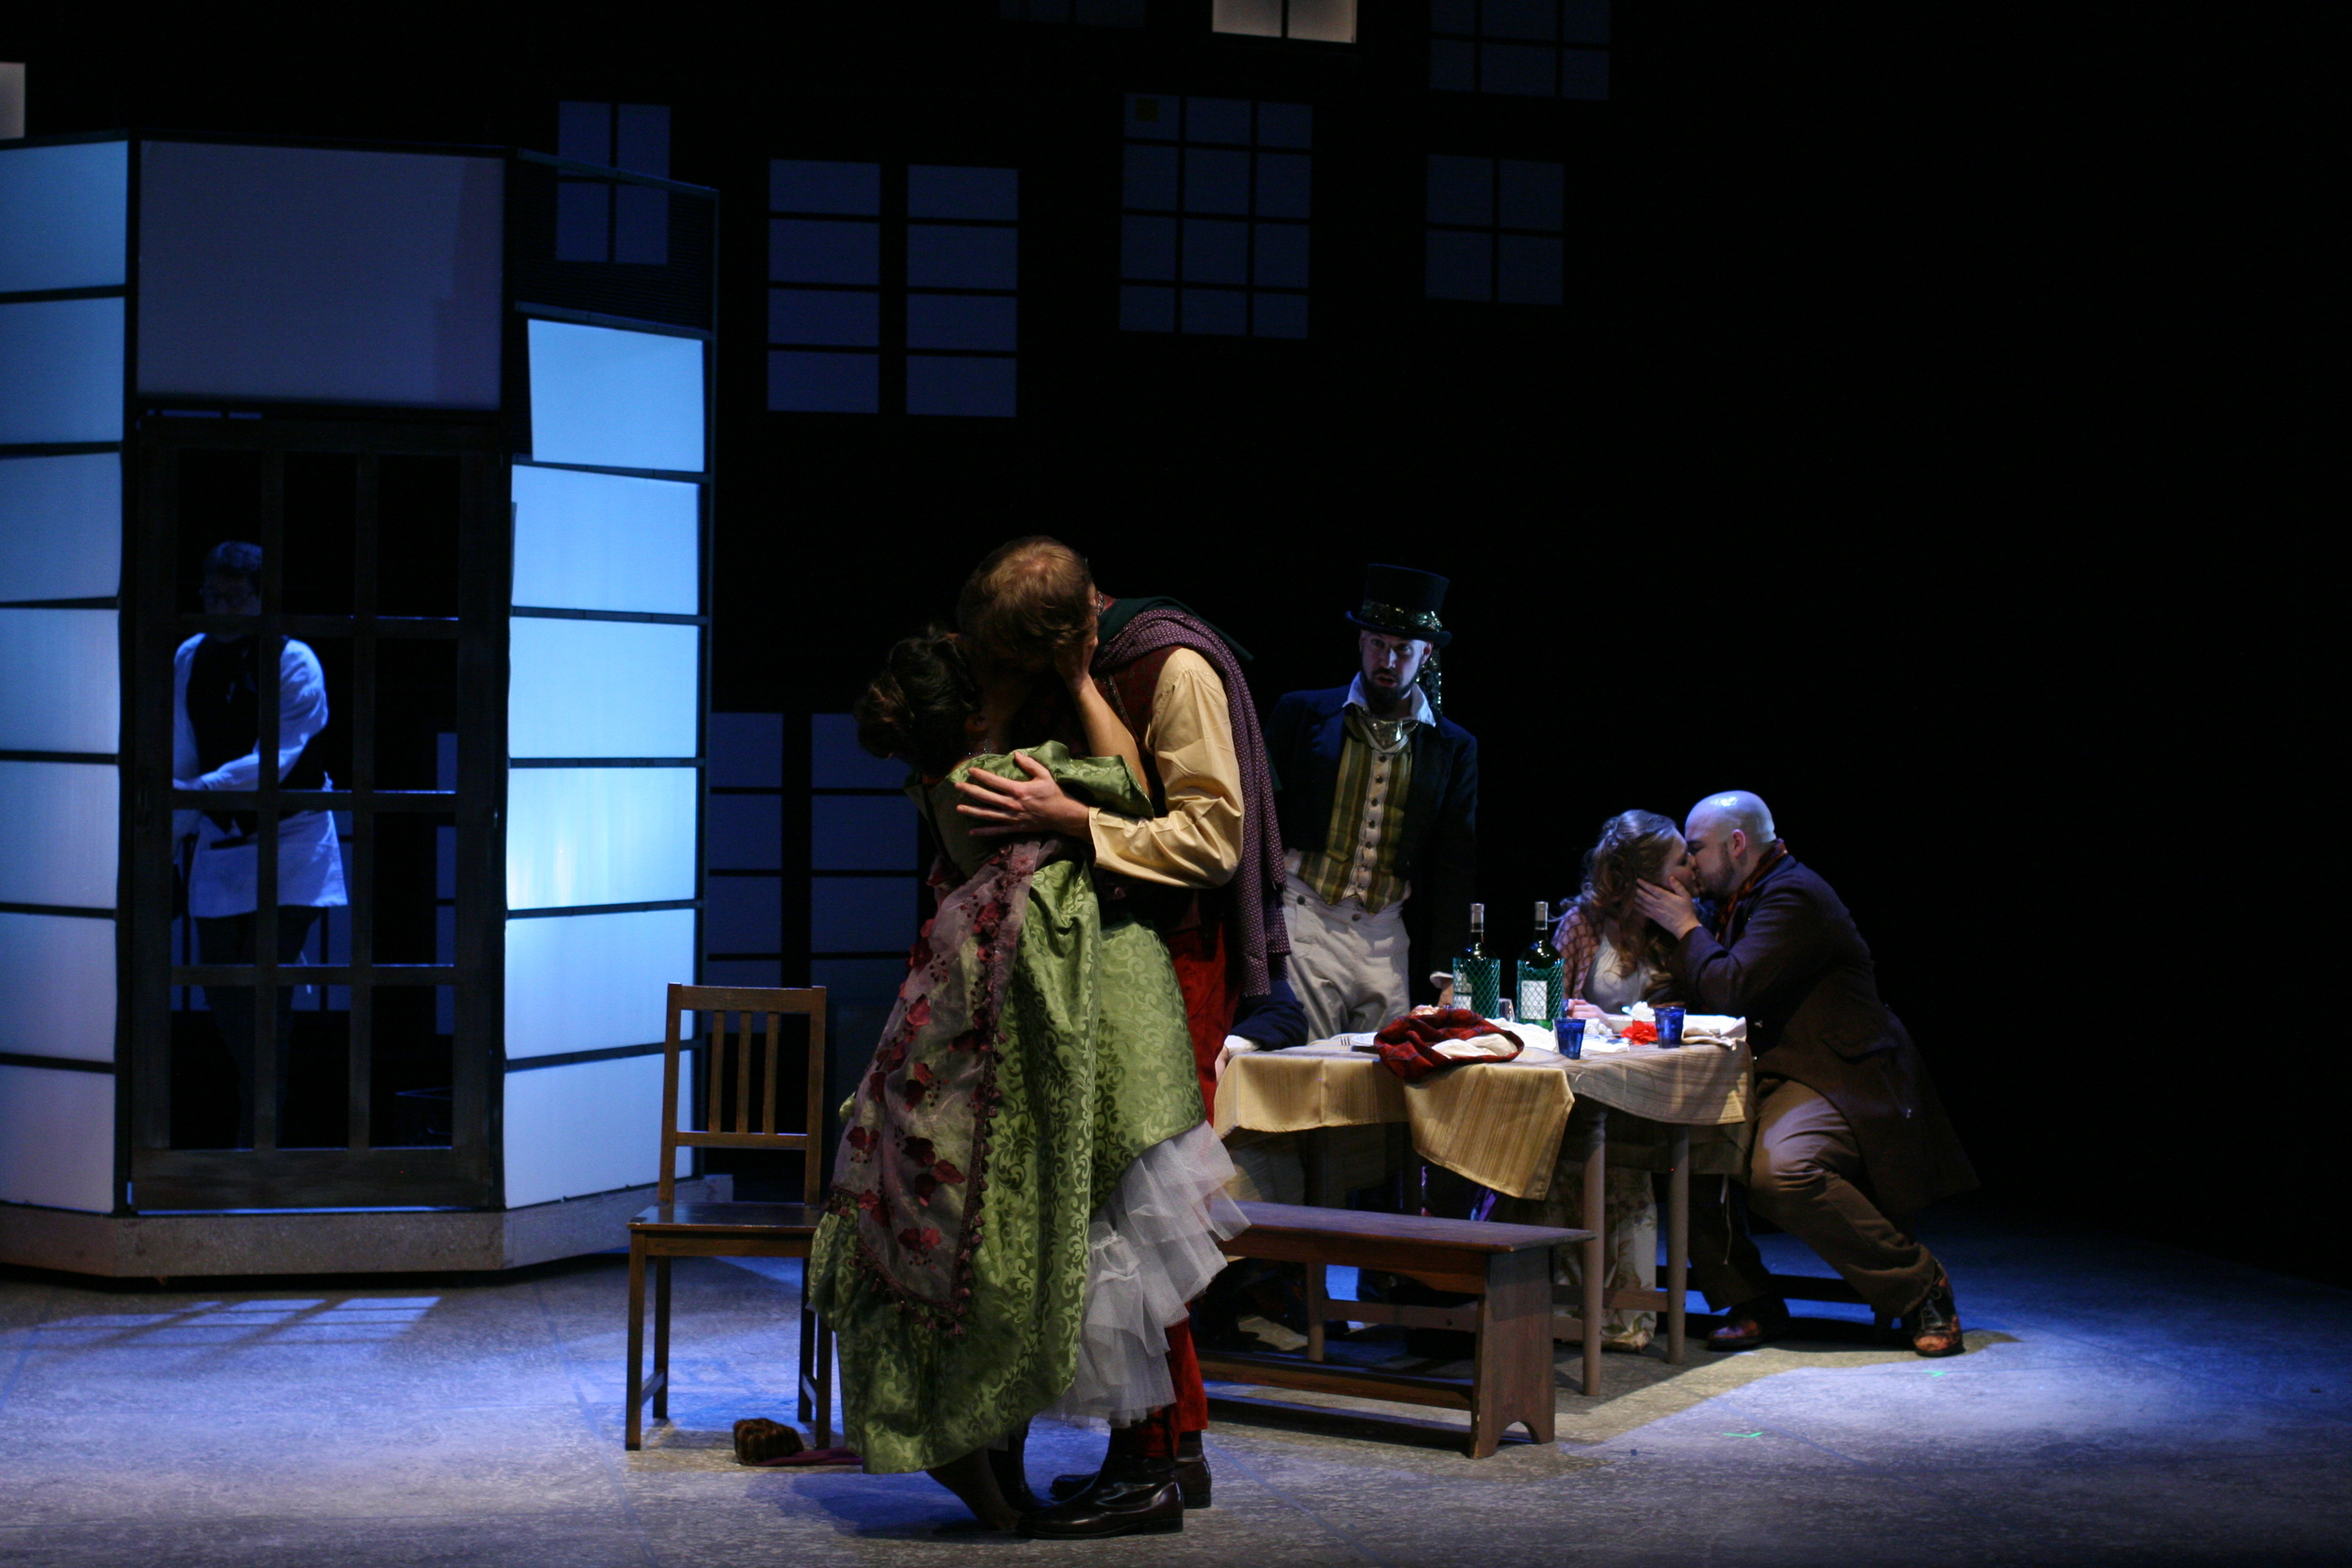 boheme kissing.jpeg